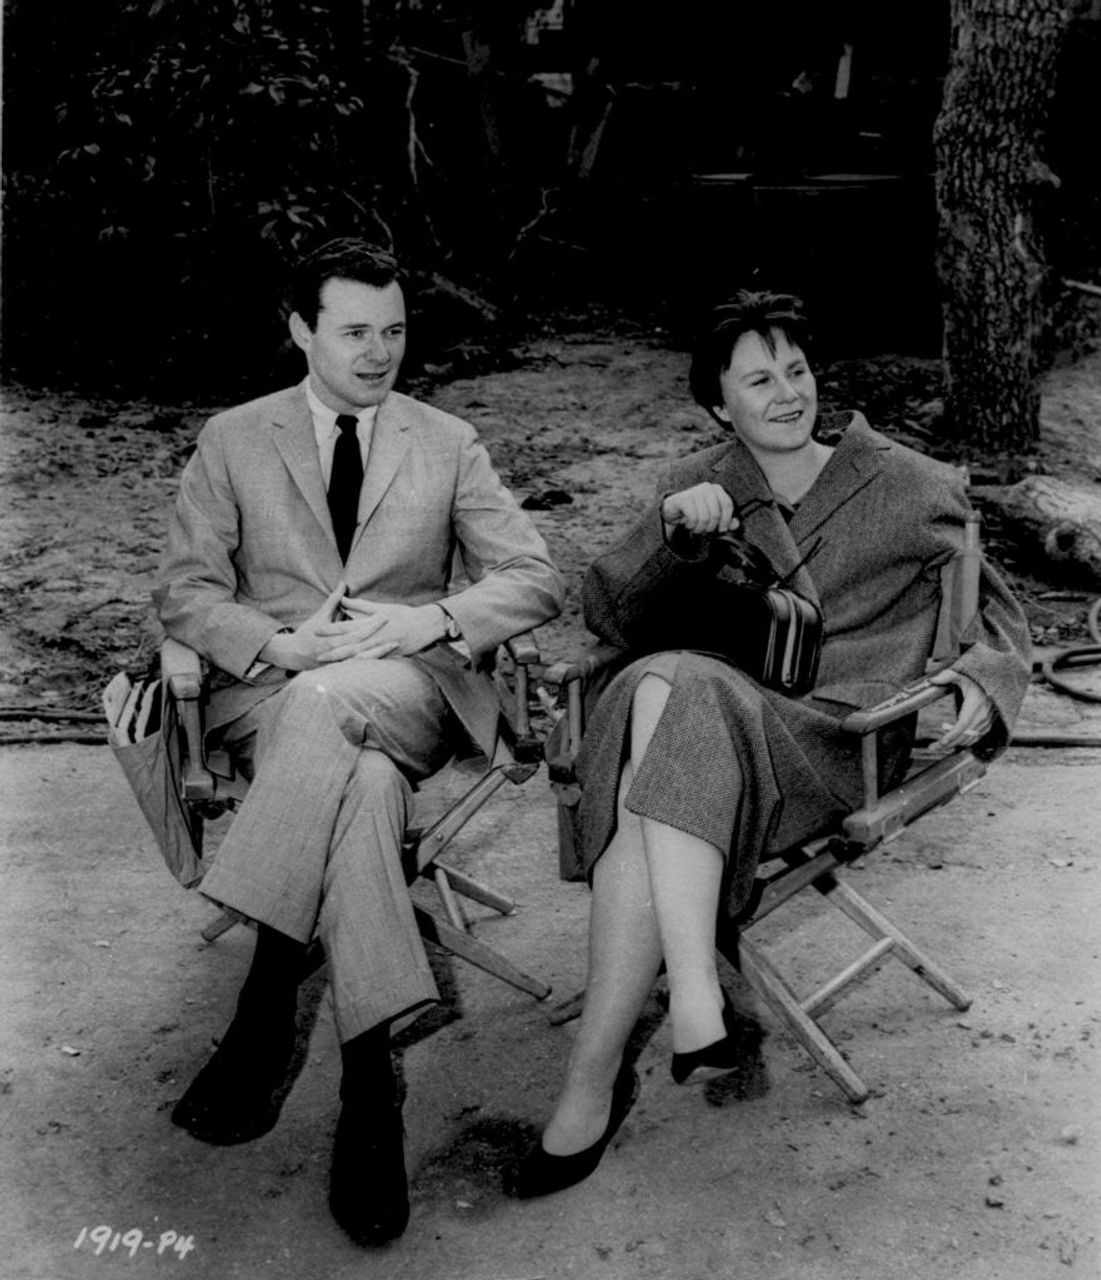 Producer Alan Pakula and Harper Lee on set of To Kill a Mockingbird in 1962